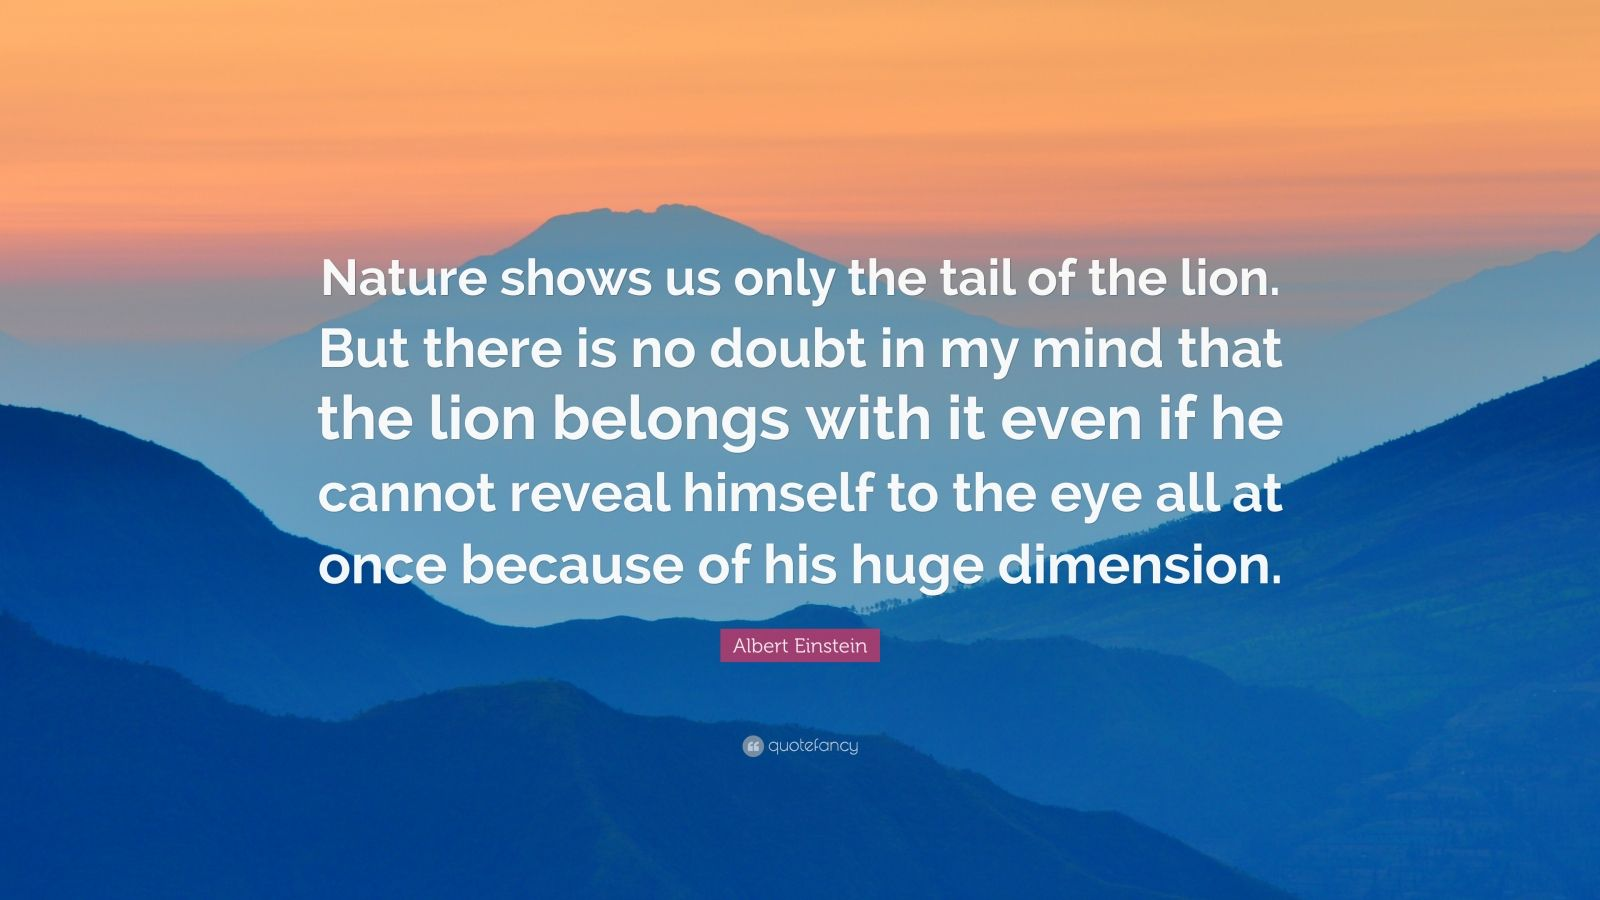 """Albert Einstein Quote: """"Nature shows us only the tail of the lion. But there is no doubt in my mind that the lion belongs with it even if he cannot reveal himself to the eye all at once because of his huge dimension."""""""